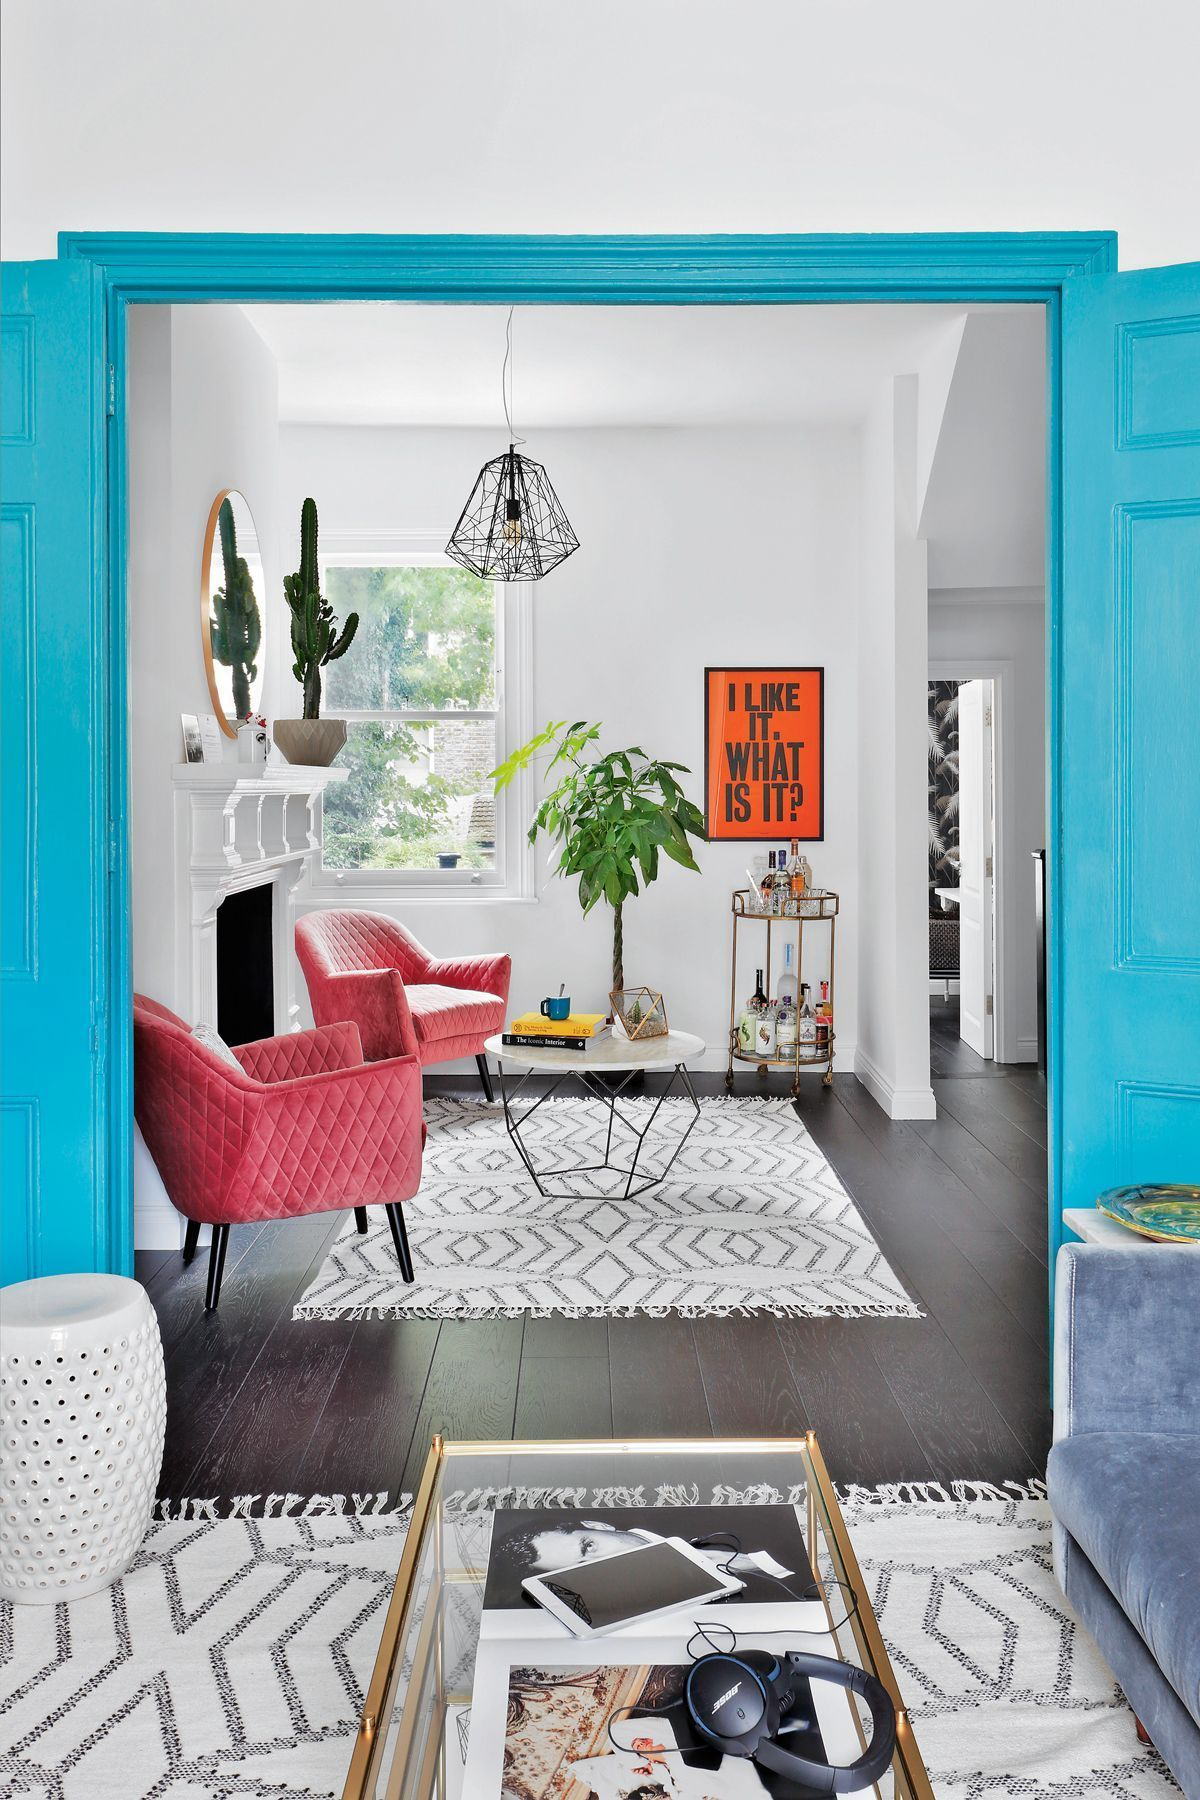 By Adding Bursts Of Colour Such As These Pink Chairs Blue Doors And Orange Artwork You Can Add Colourful Living Room Living Room Turquoise Pink Living Room #turquoise #and #pink #living #room